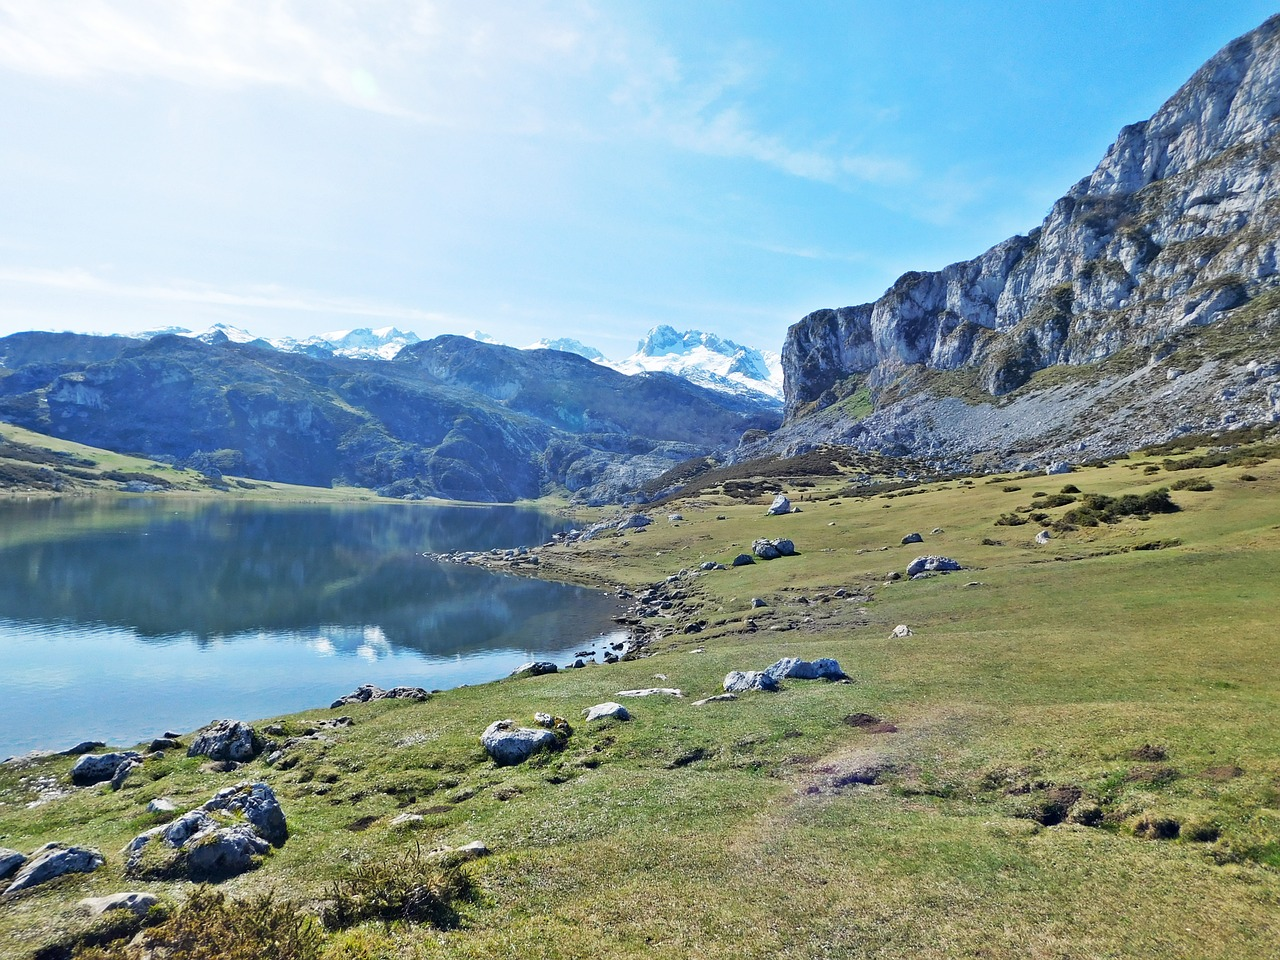 ASTURIAS: WHAT TO DO AND WHAT TO SEE